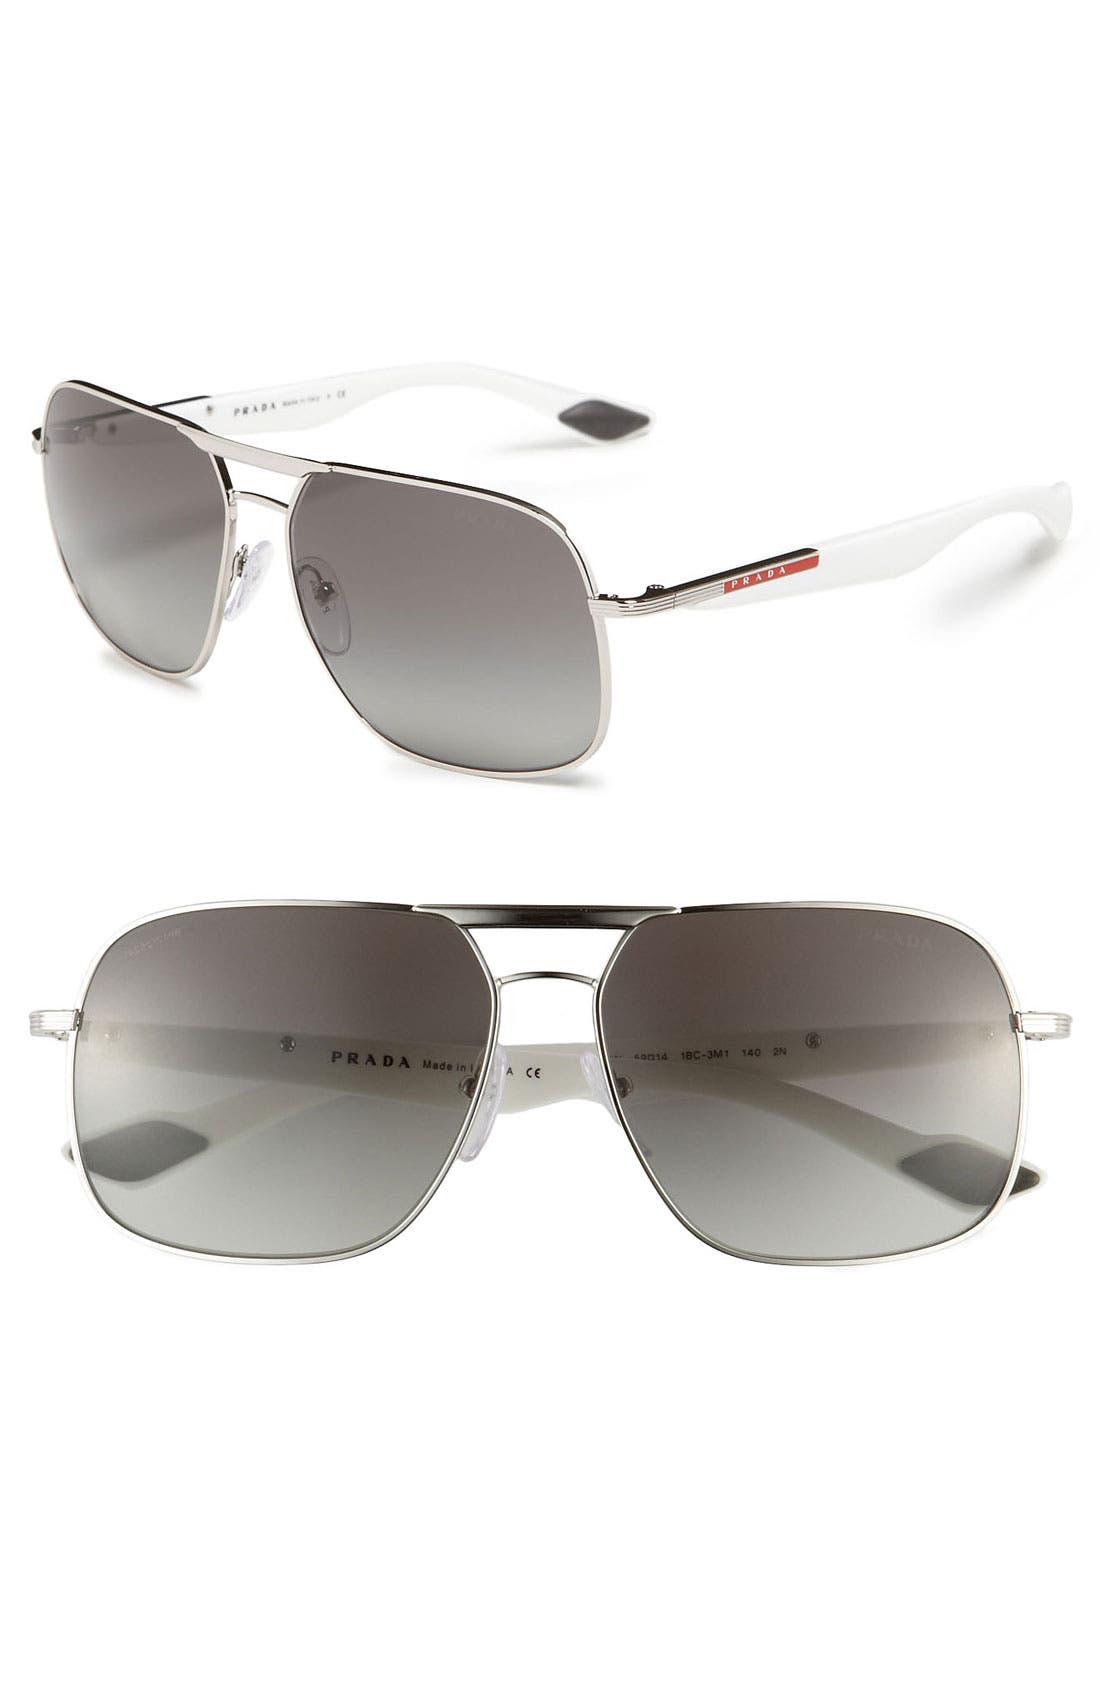 Main Image - Prada 61mm Navigator Sunglasses